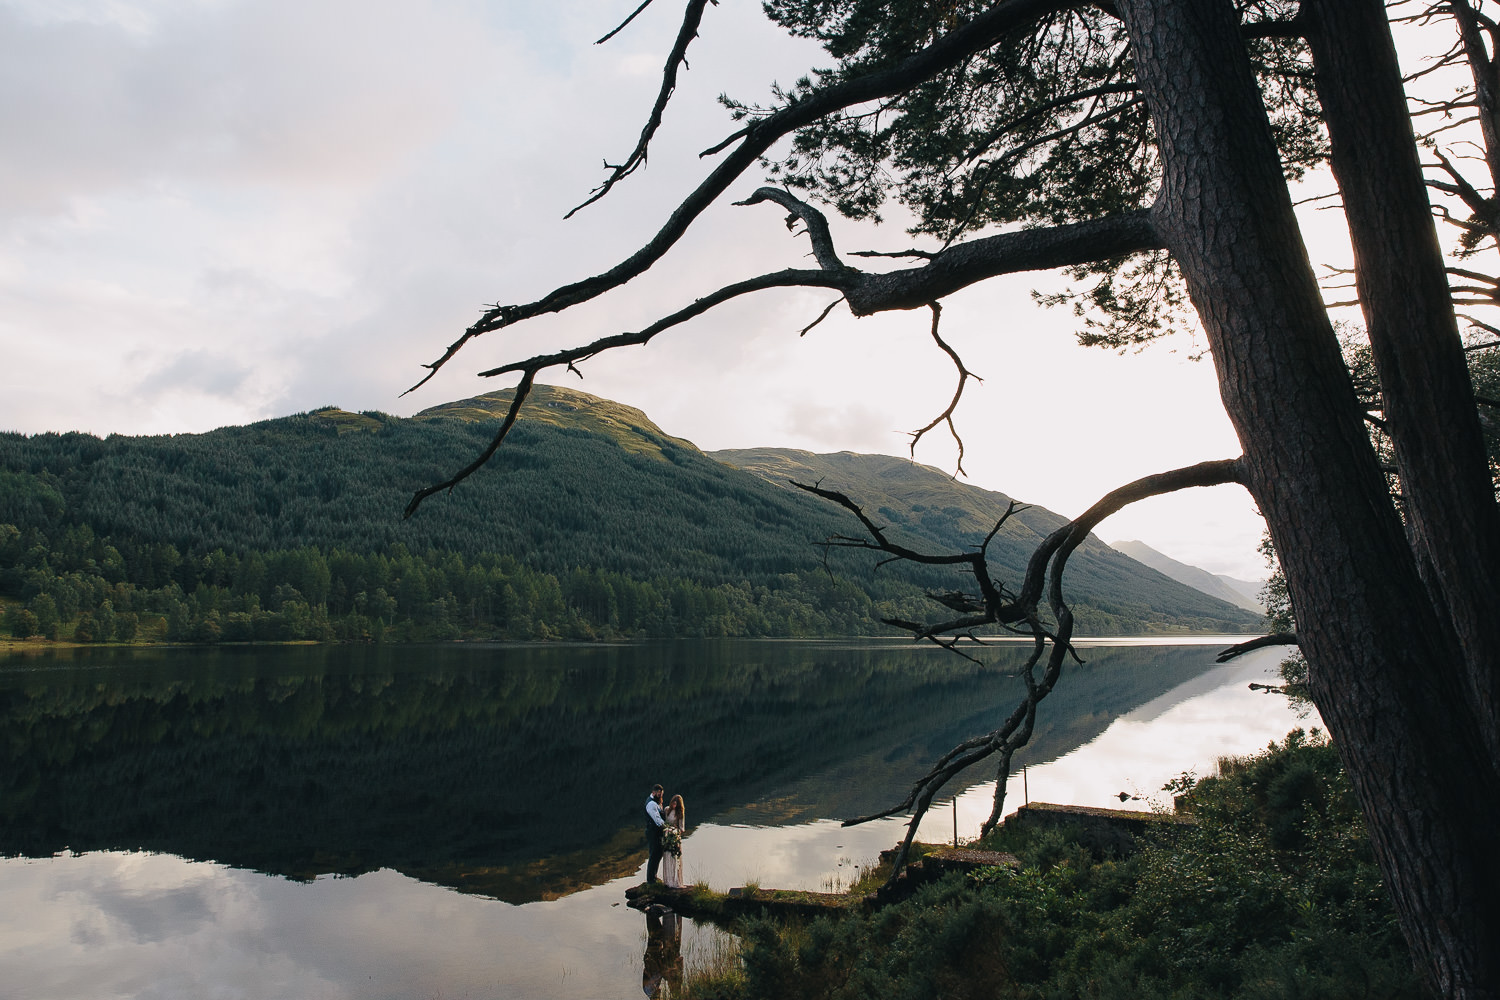 Loch-highland-elopement-wedding-7.jpg